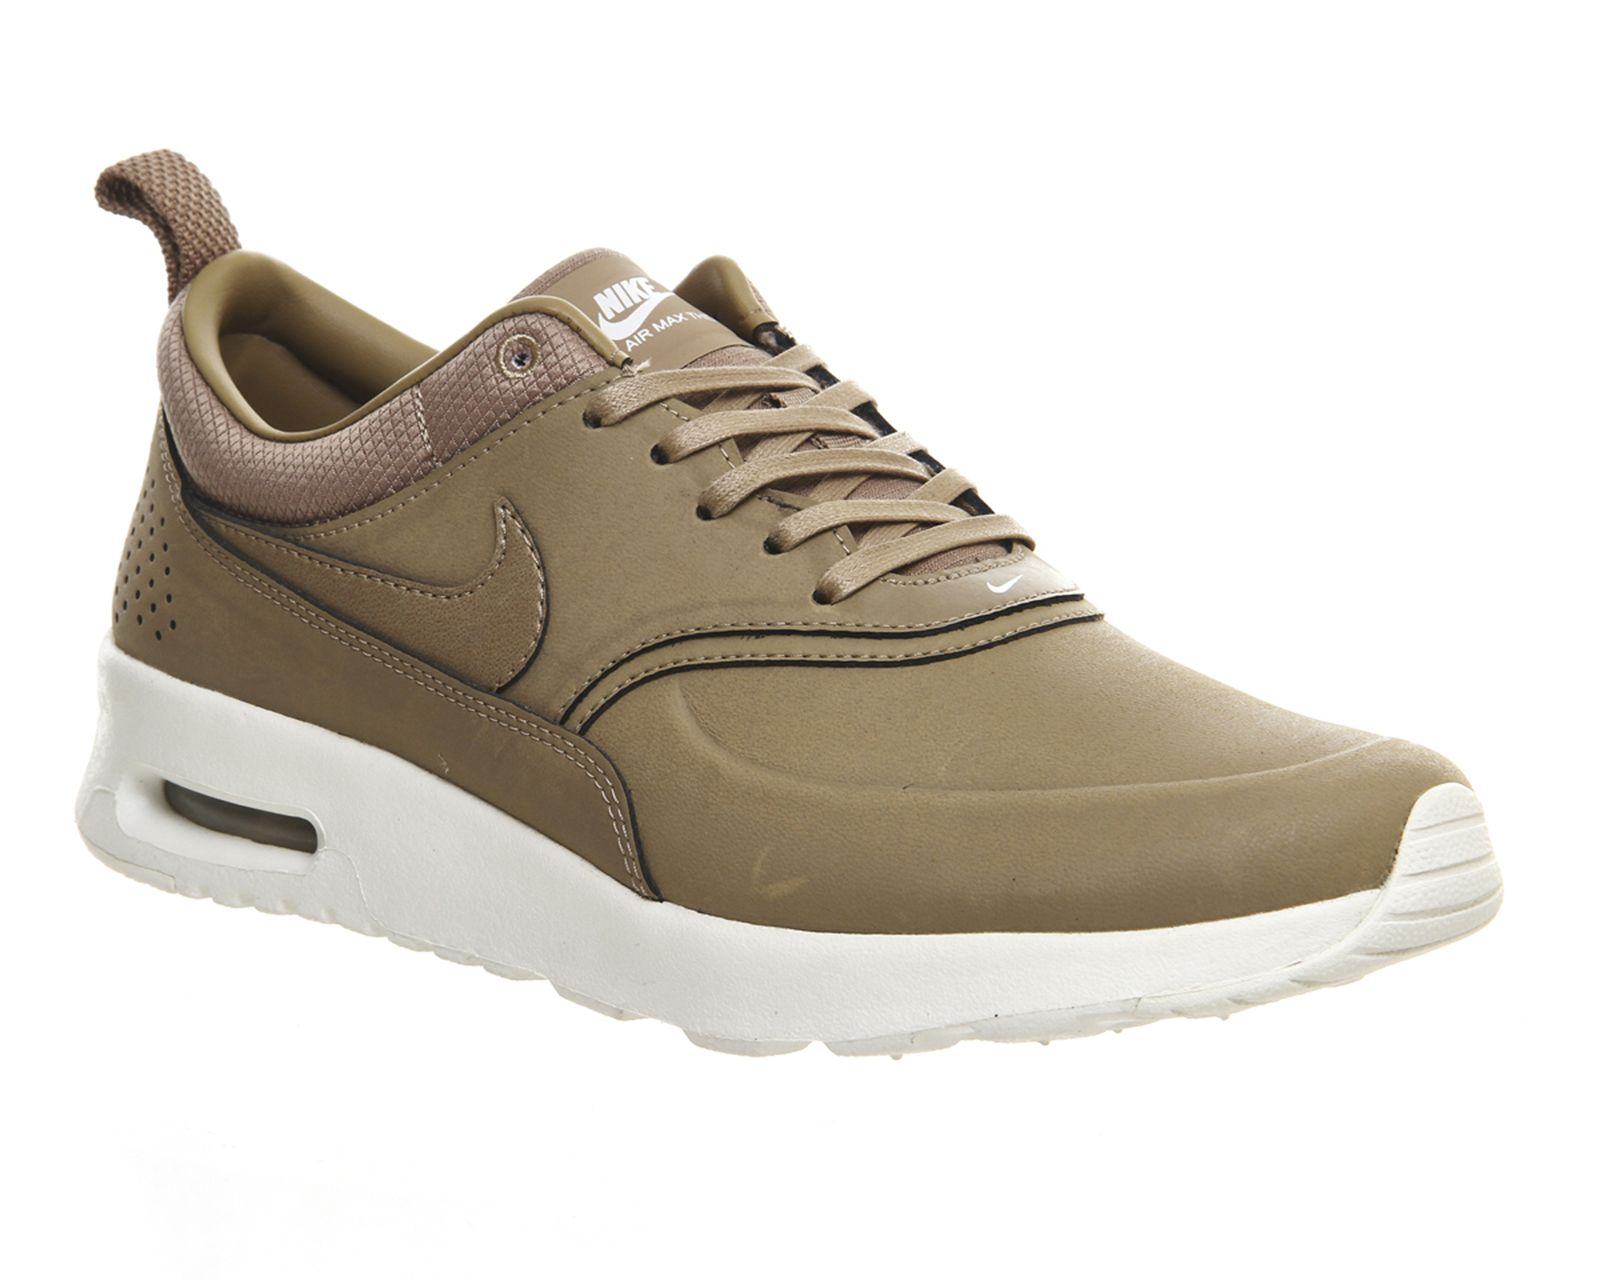 Buy Desert Prem Nike Air Max Thea from OFFICE.co.uk.